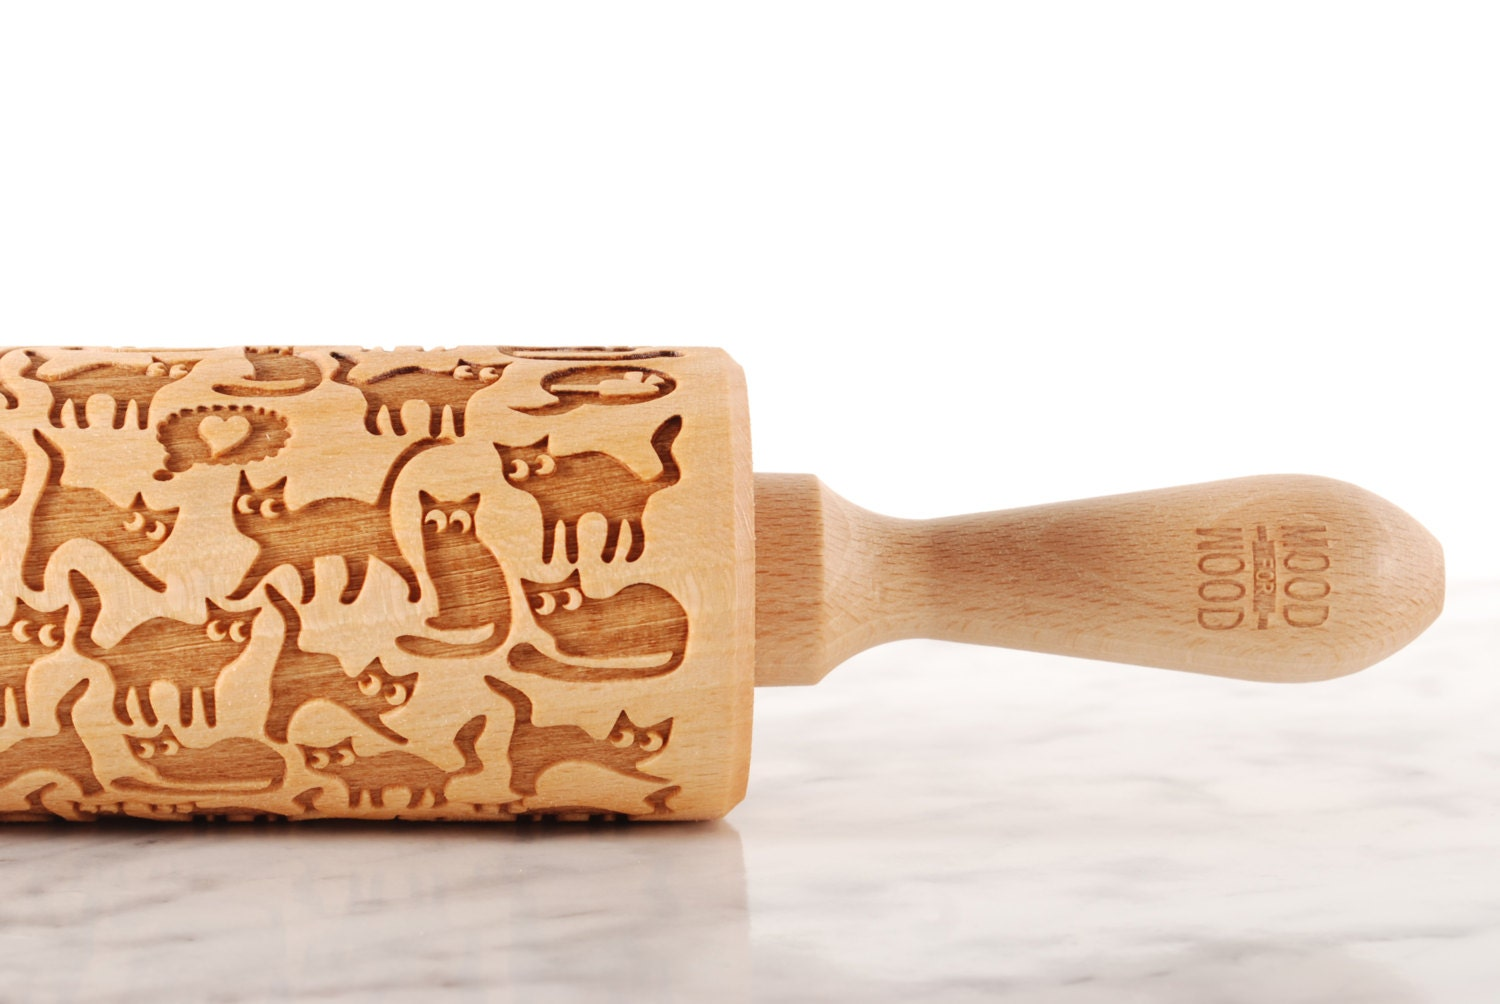 Rolling pin ornament - Funny Cats Embossed Engraved Rolling Pin For Cookies